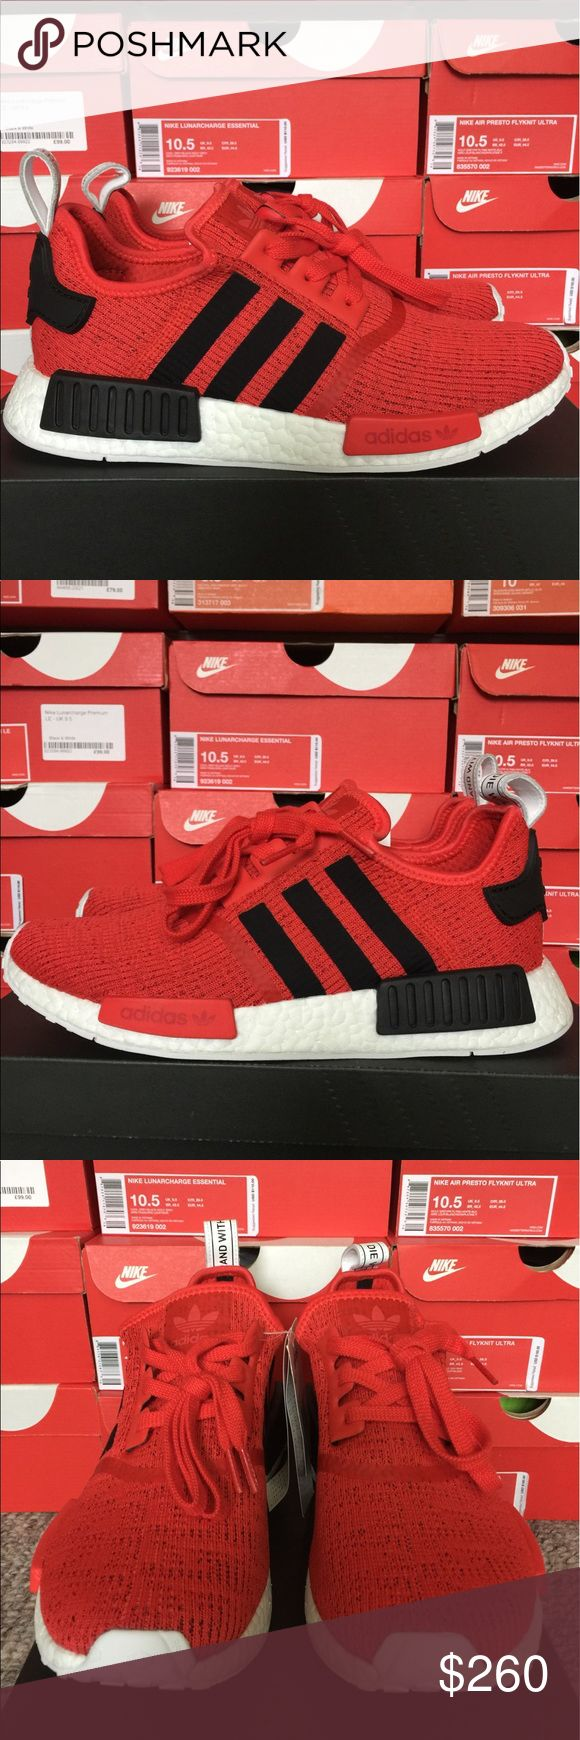 Adidas NMD_R1 BRAND NEW!!! Adidas NMD_R1 BRAND NEW!!! Size:9.5 Core Red & Core Black  All items being sold are guaranteed 110% authentic, genuine, and real product. No fakes no replicas NEVER!! trusted and reliable seller on multiple sites for over 10+ years.thank you very much for all inquiries enjoy your shopping experience. adidas Shoes Sneakers